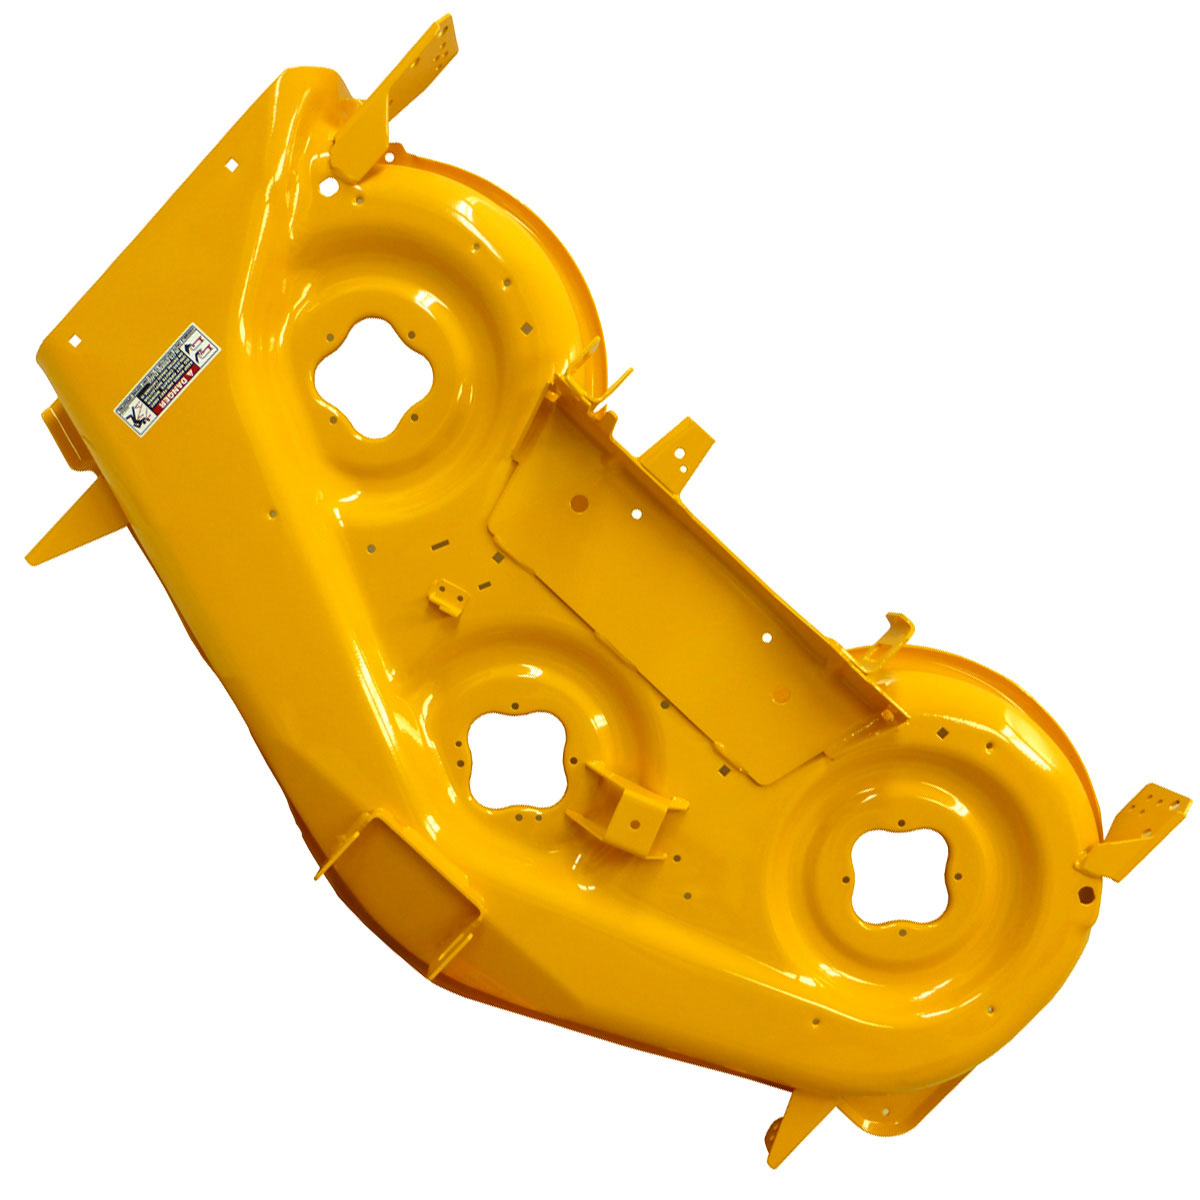 Cub Cadet Deck Shell 903 04328c 0716 Power Mower Sales